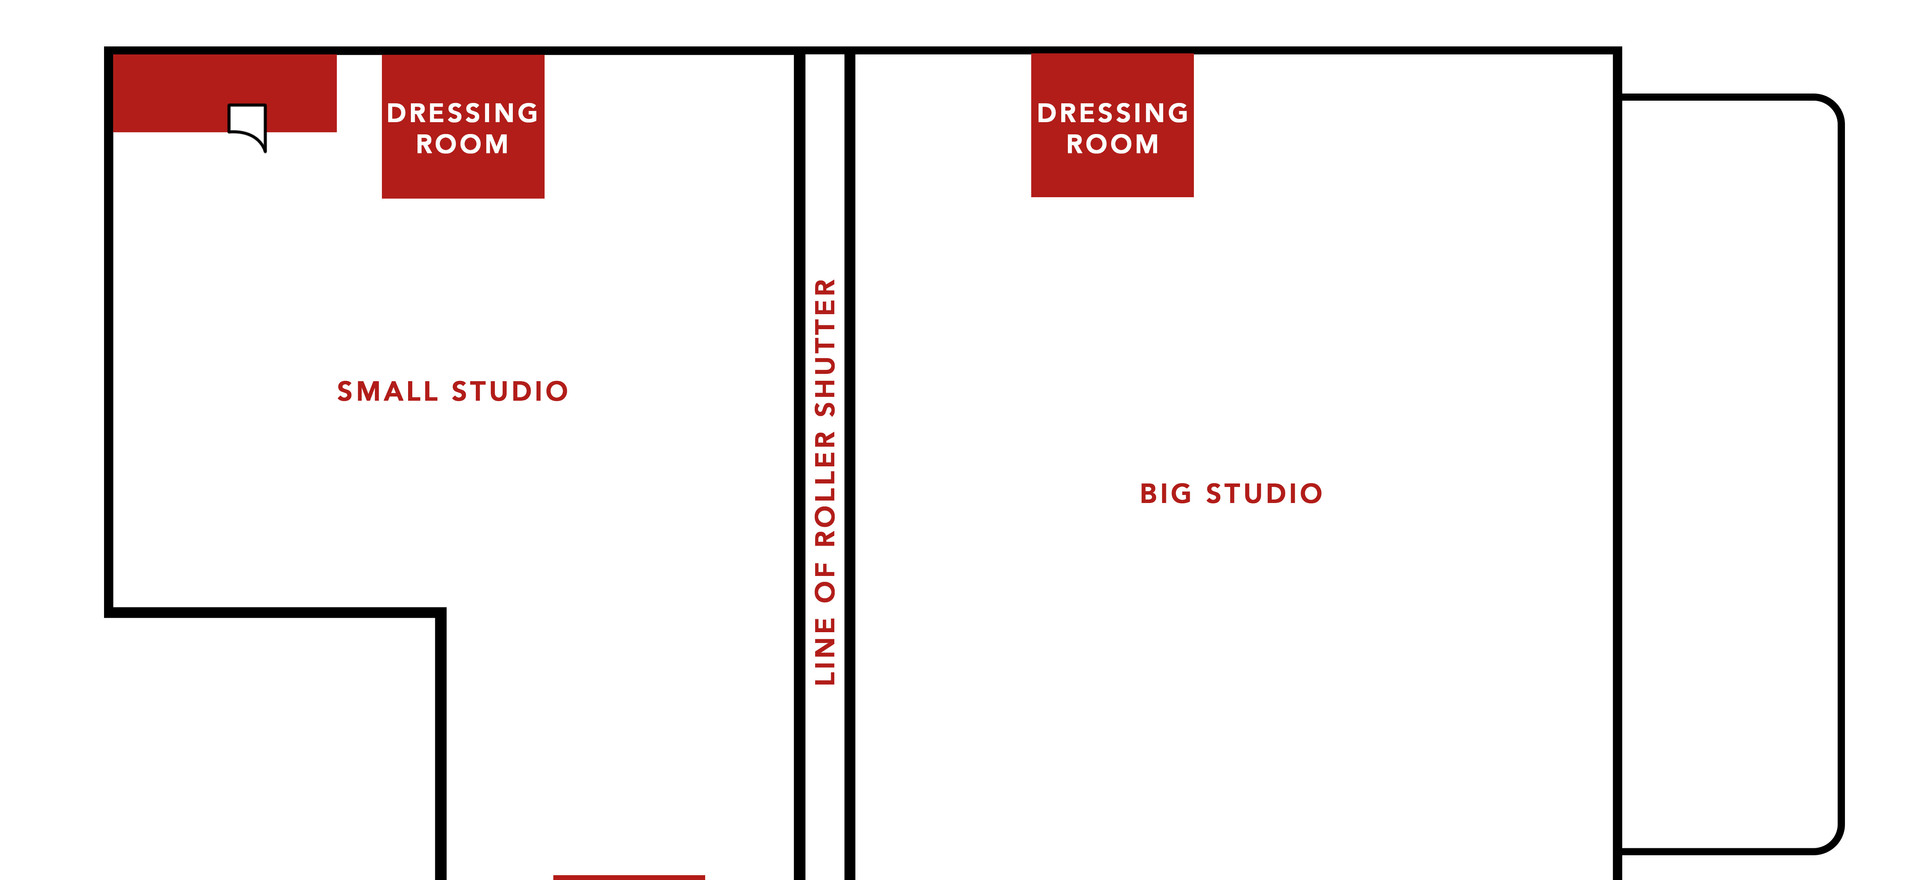 WHOLE STUDIO FLOORPLAN